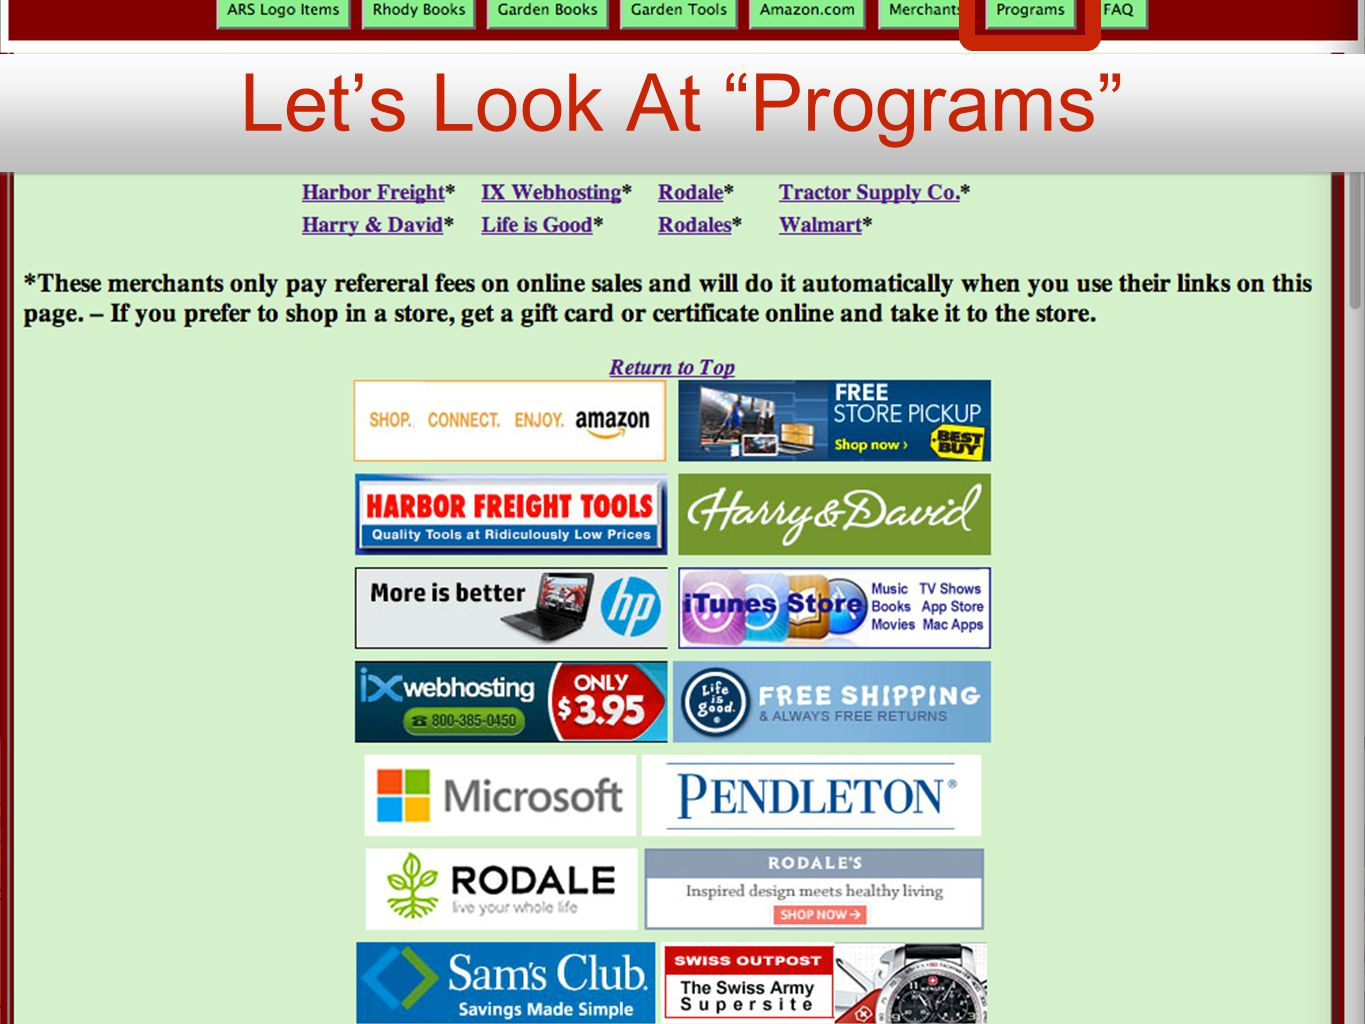 Let's Look At Programs